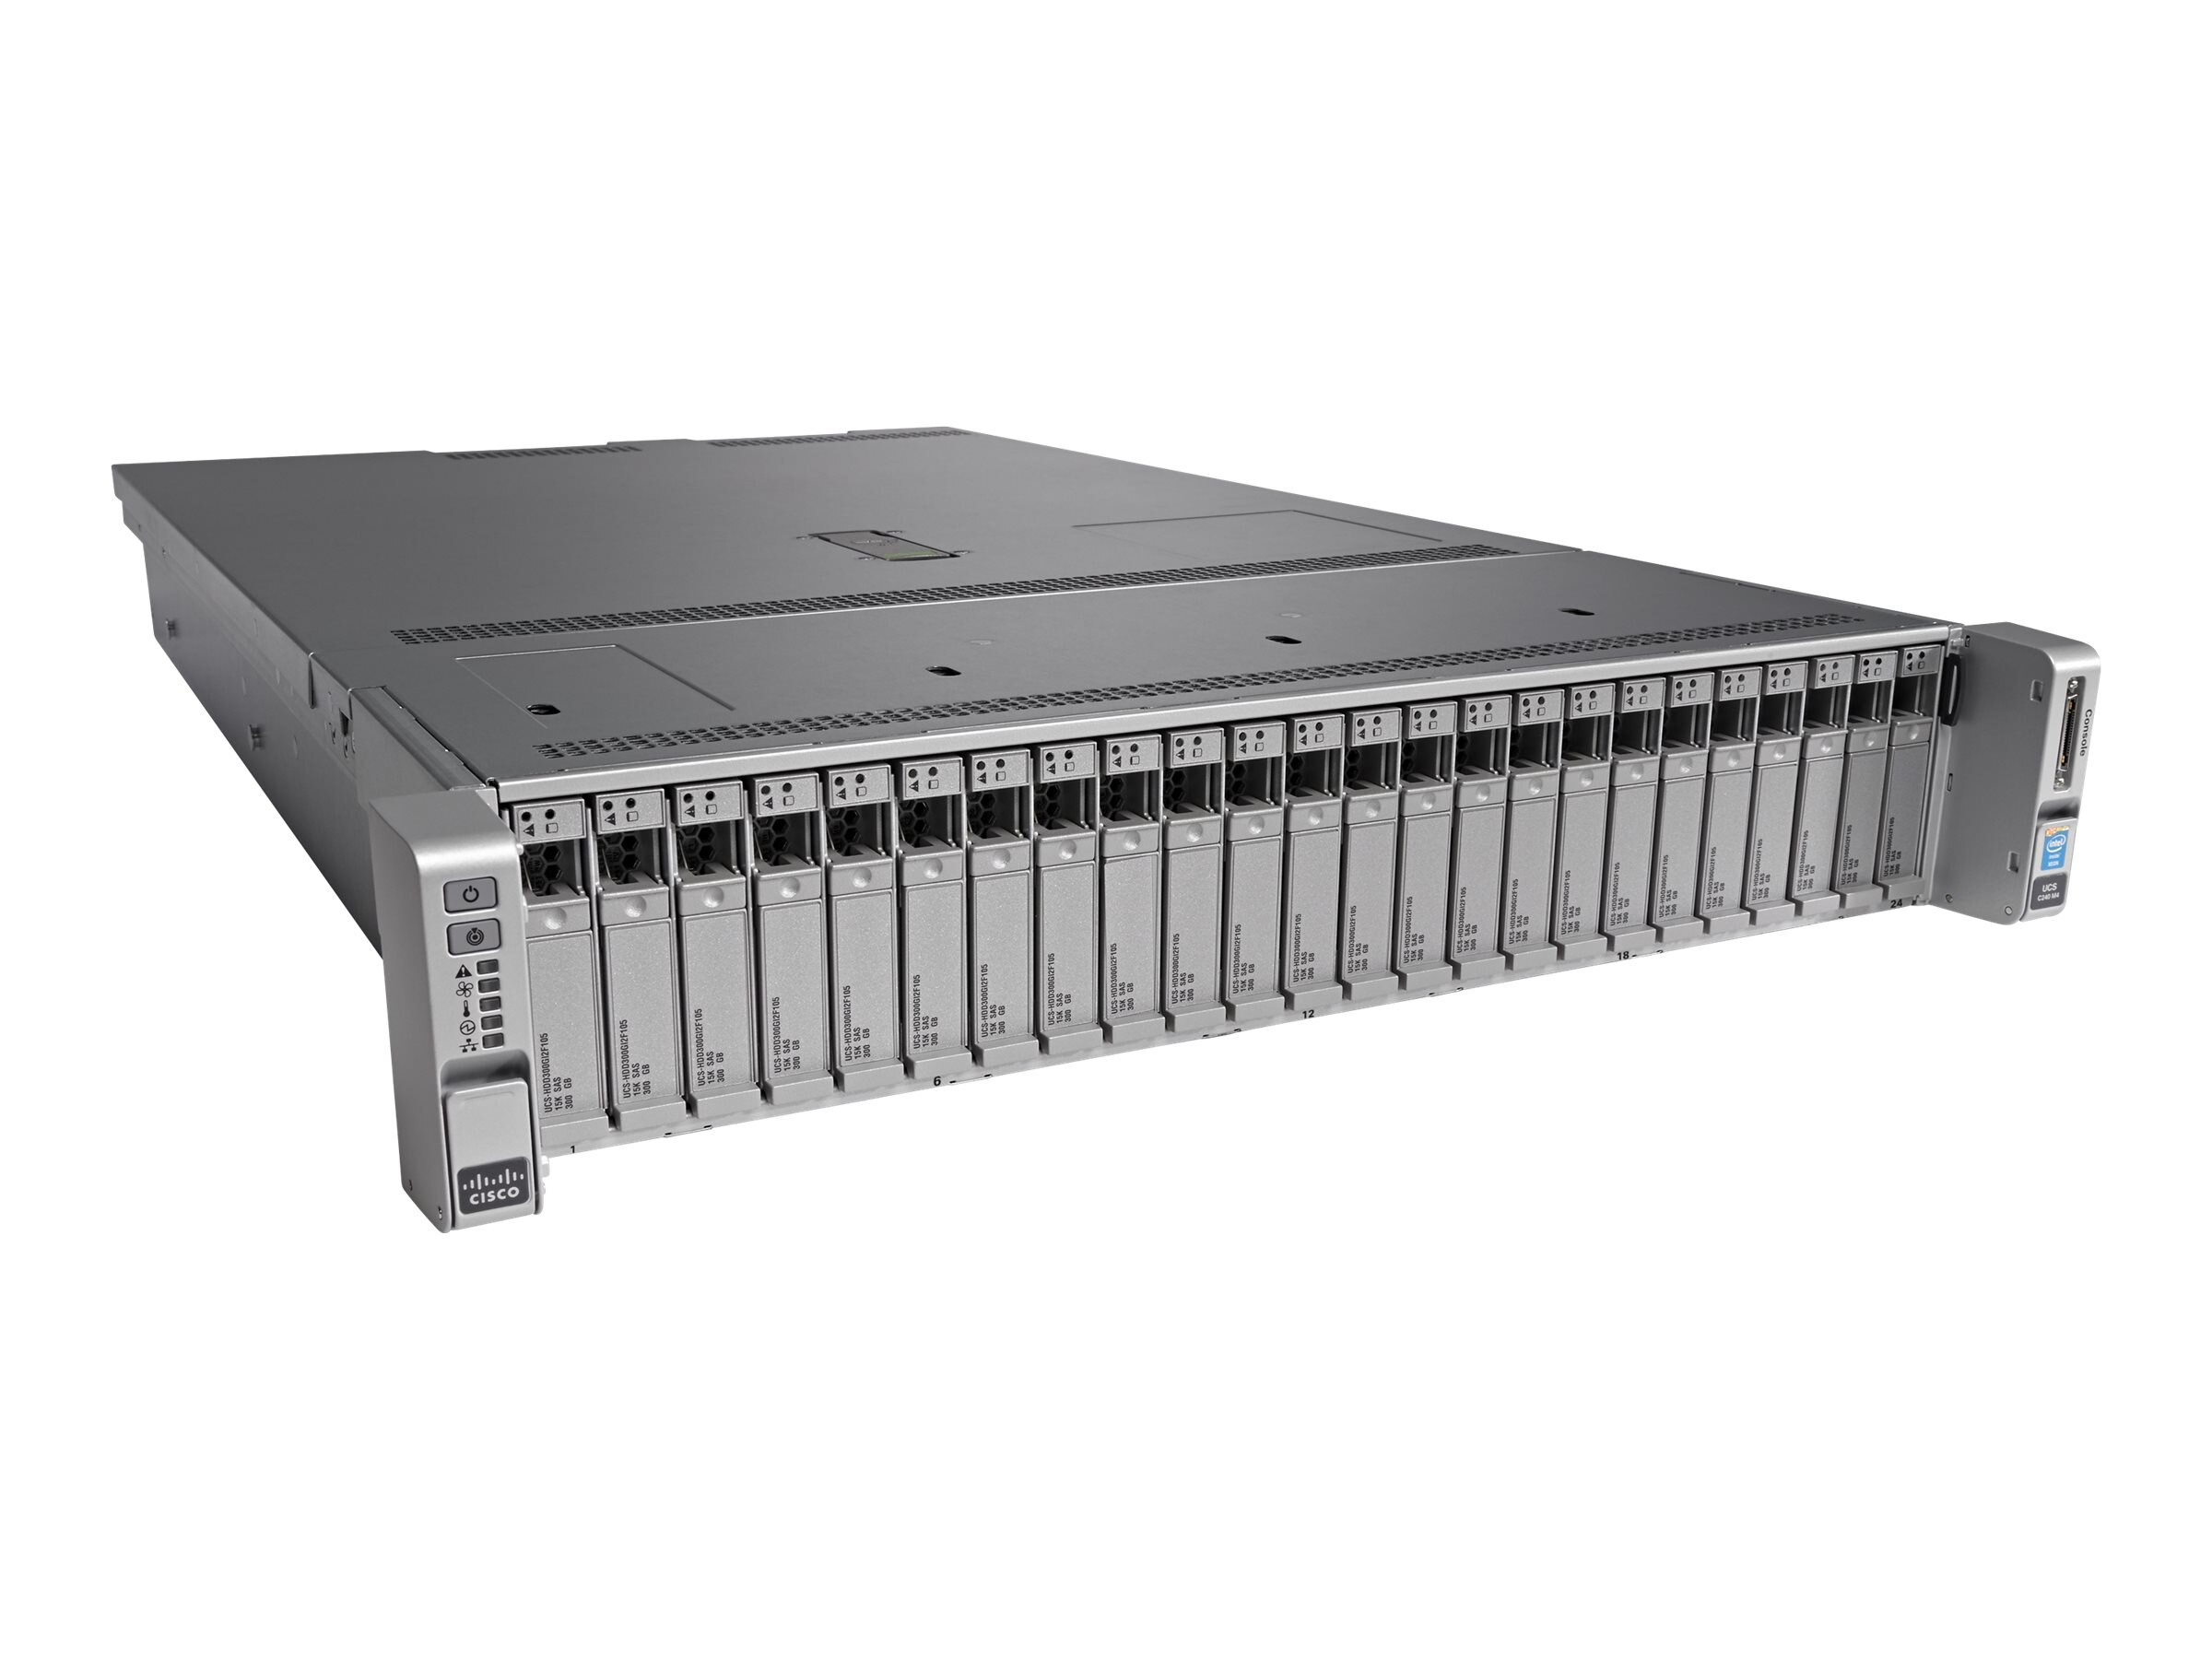 Cisco UCS-SPR-C240M4-BS1 Image 3